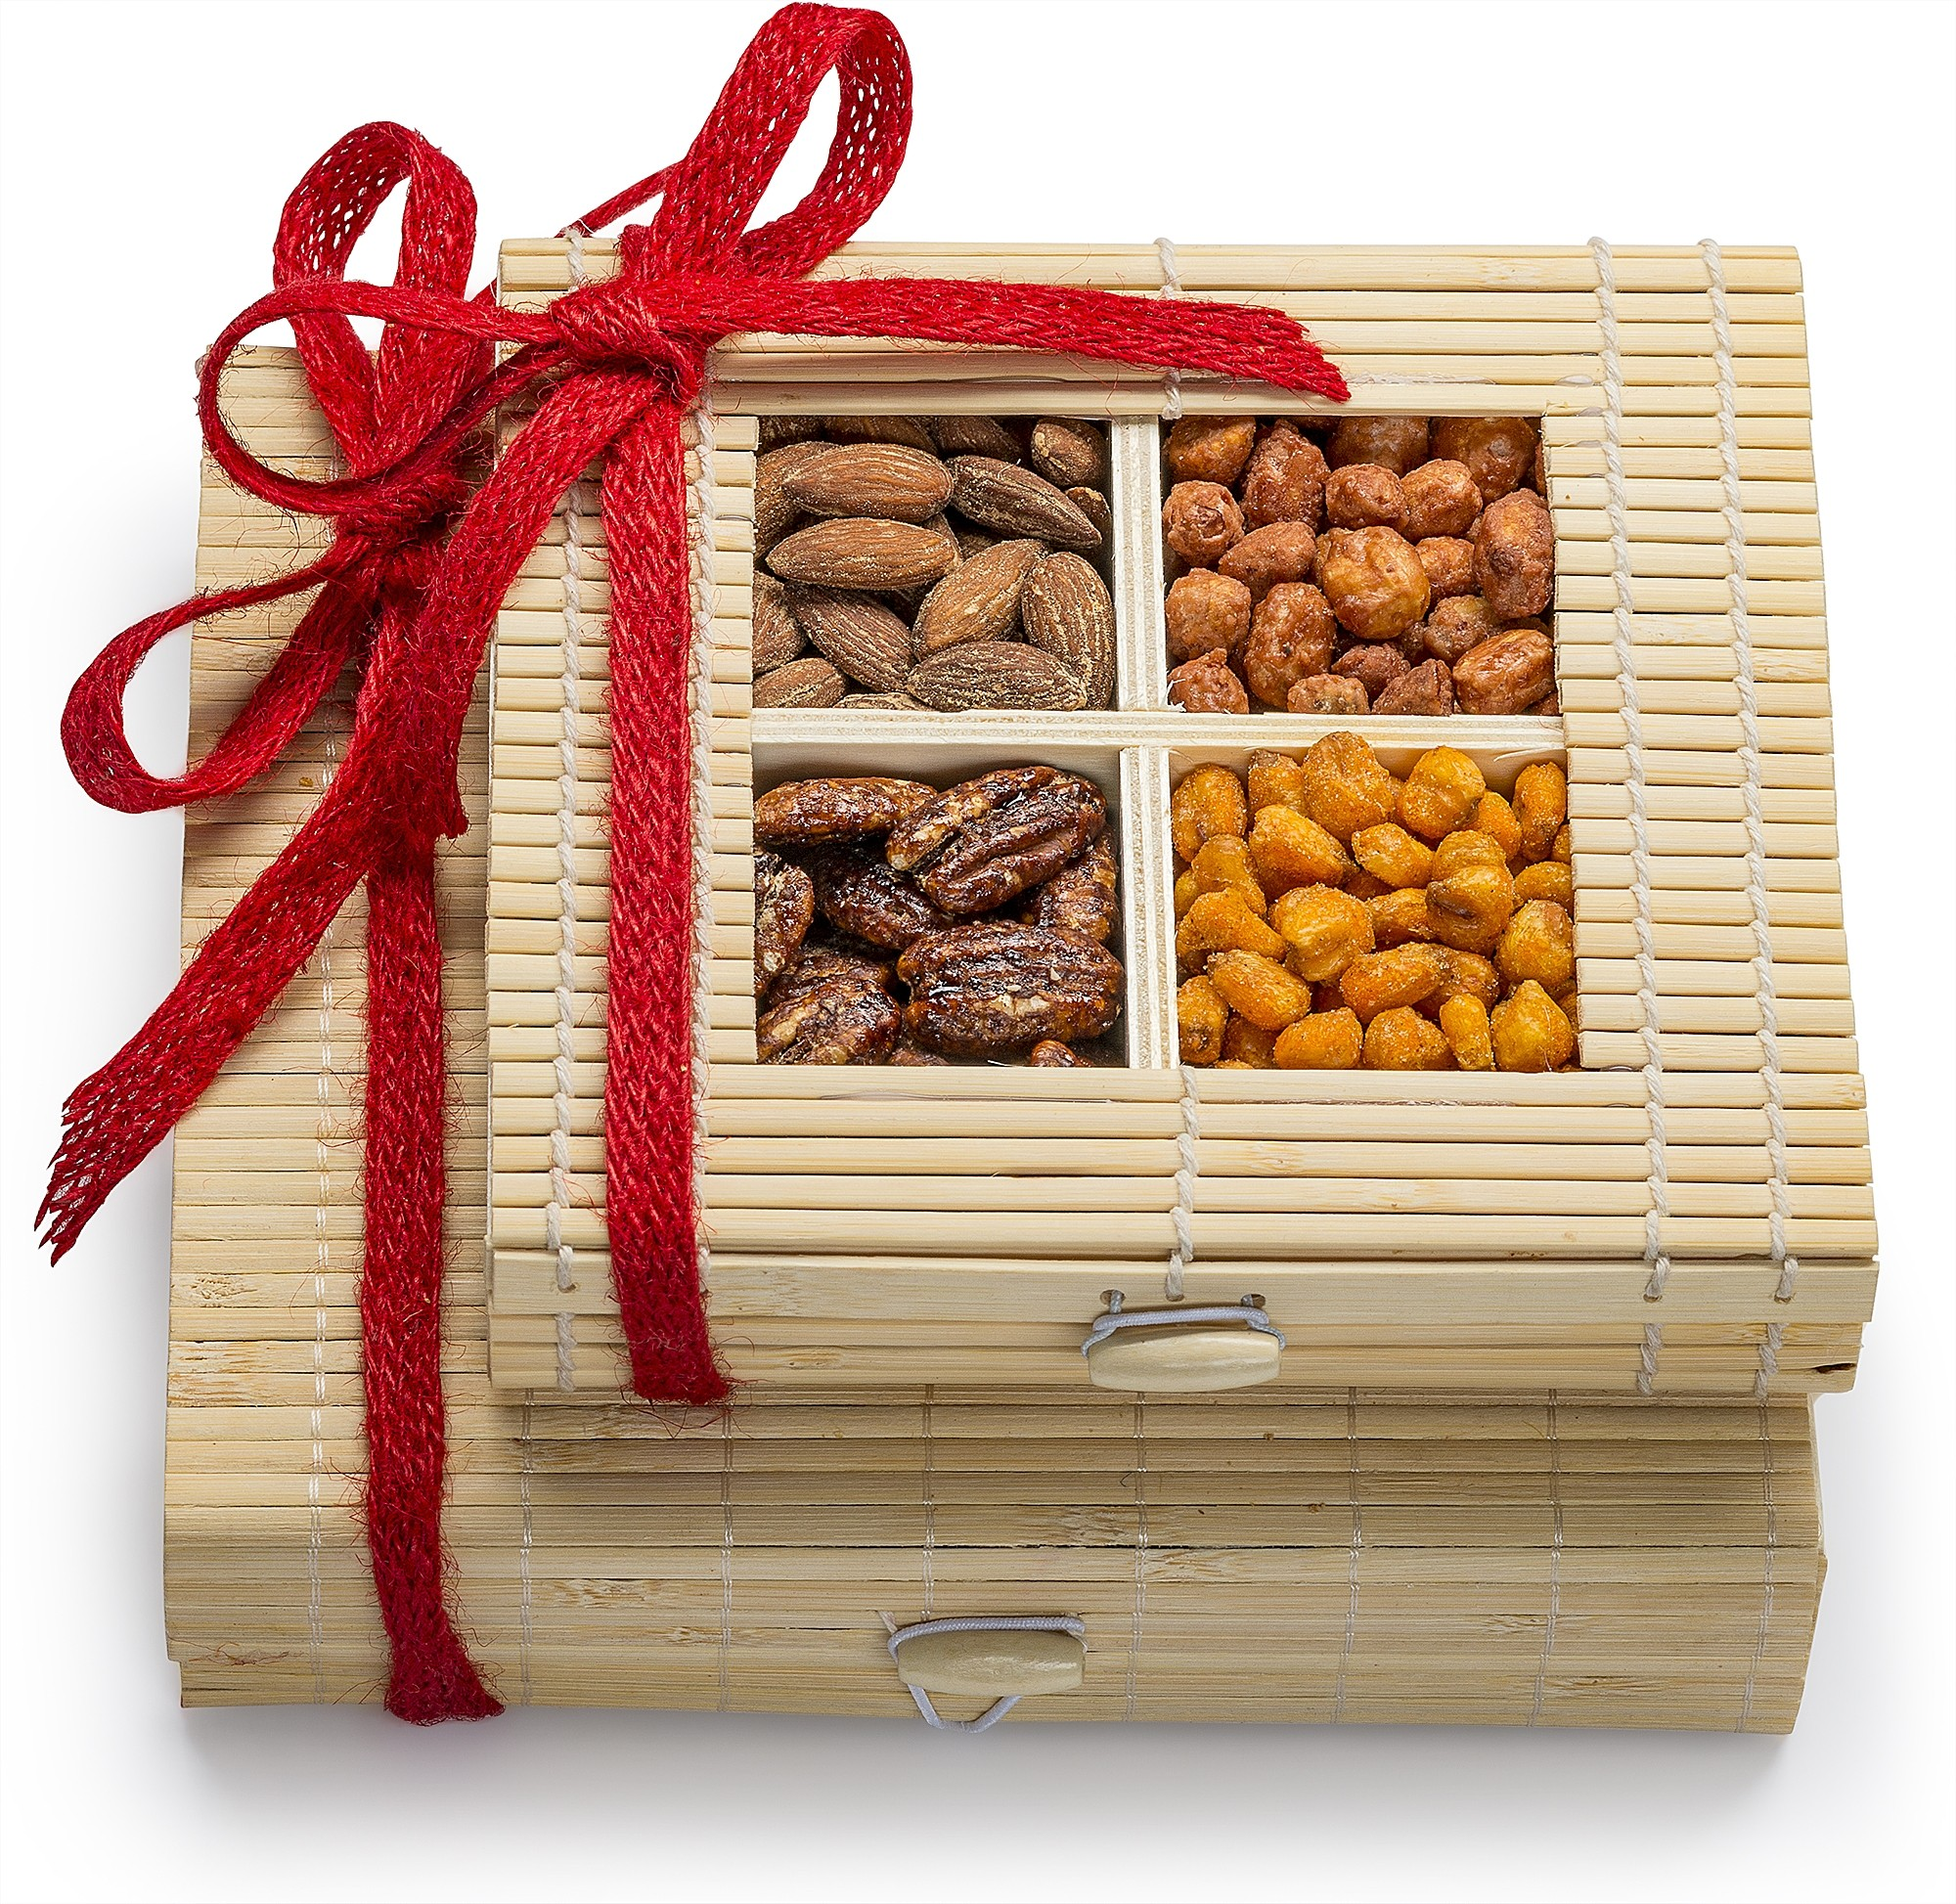 simply crave nuts gift basket holiday holiday gift tray gourmet food gift nuts tray gift assortment